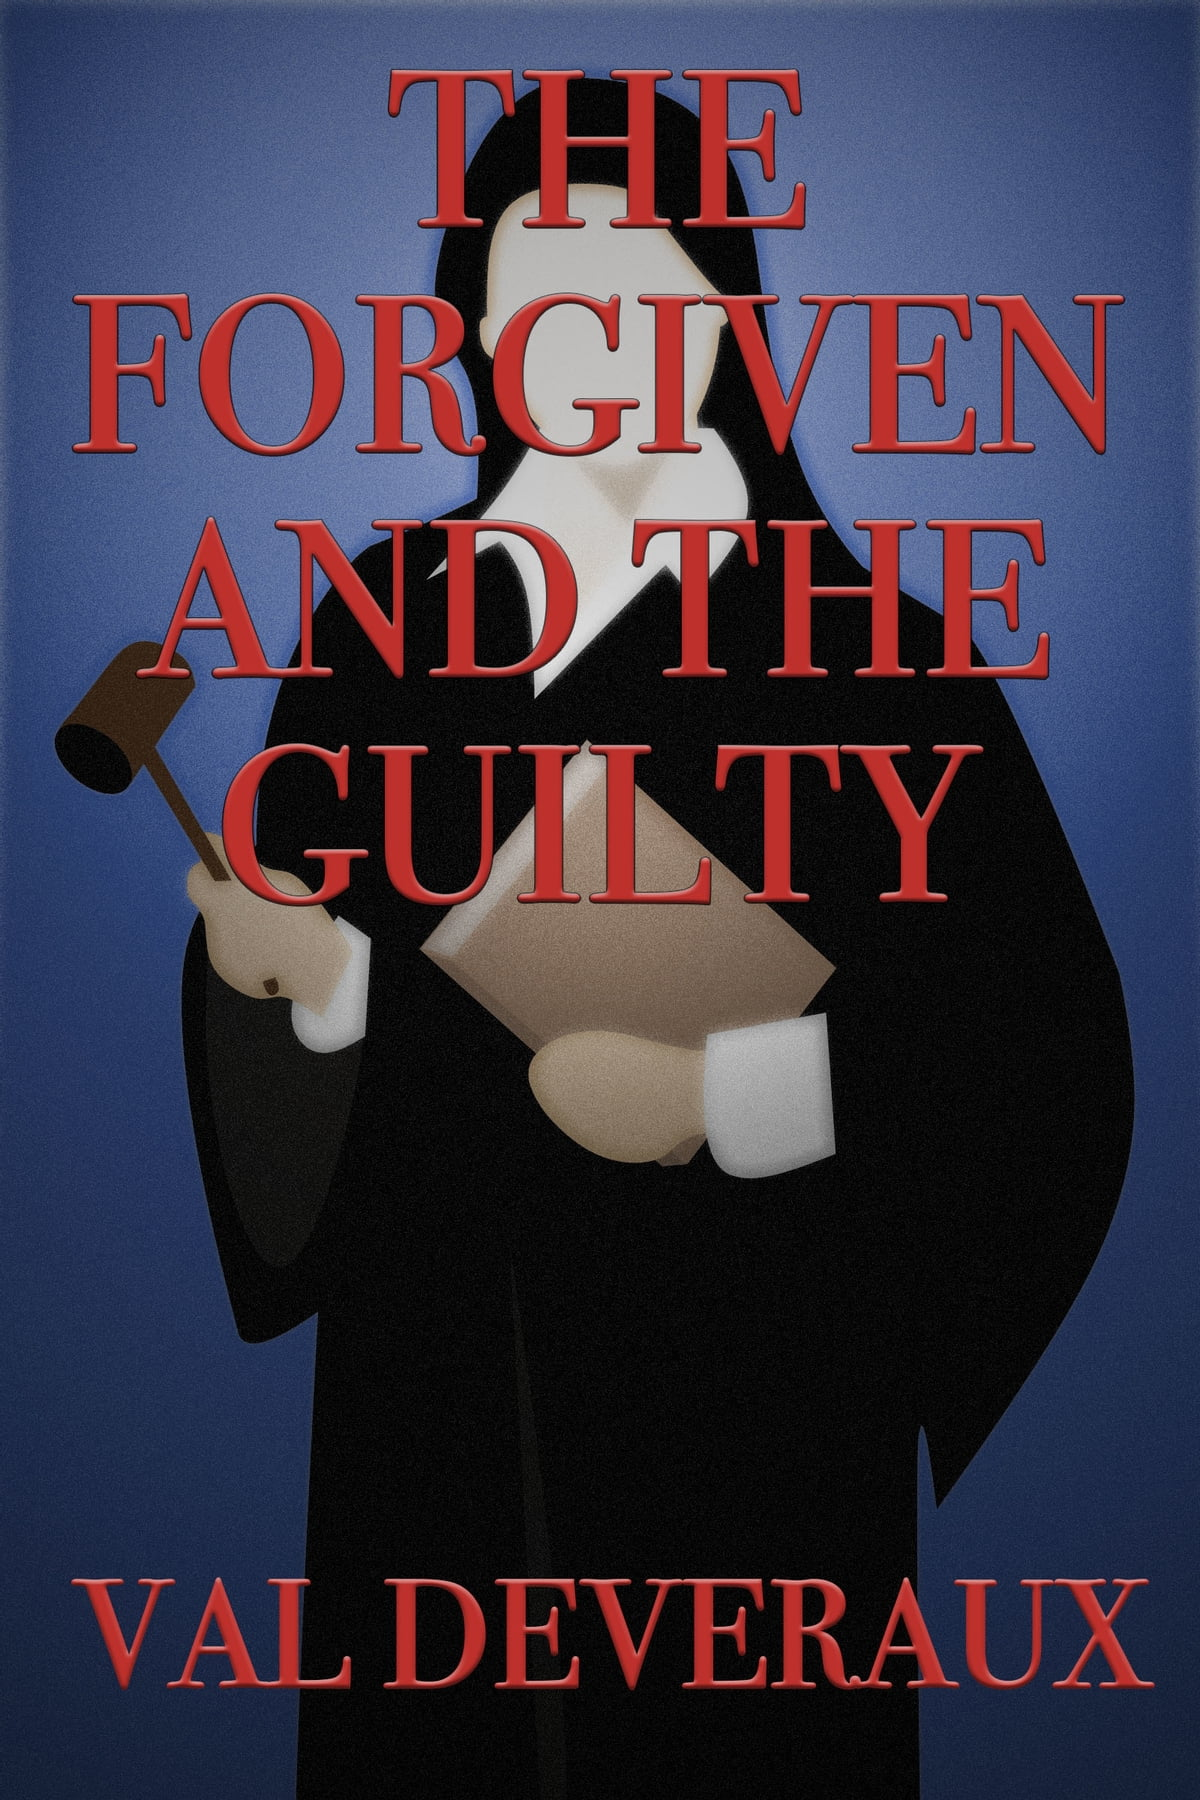 The Forgiven And The Guilty Ebook By Val Deveraux 9780463902875 Rakuten Kobo Greece